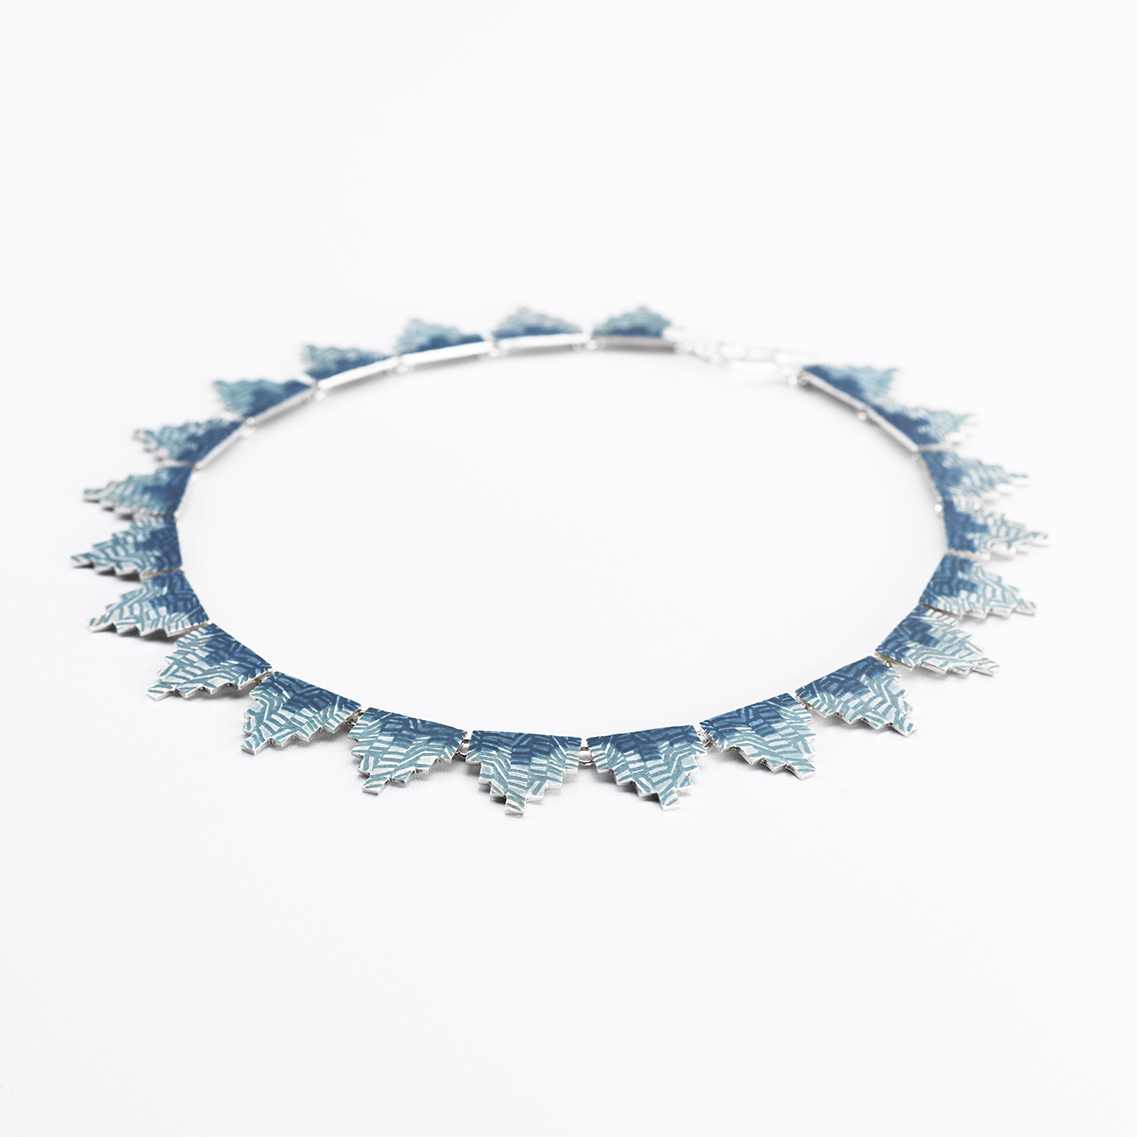 'Weave' Necklace